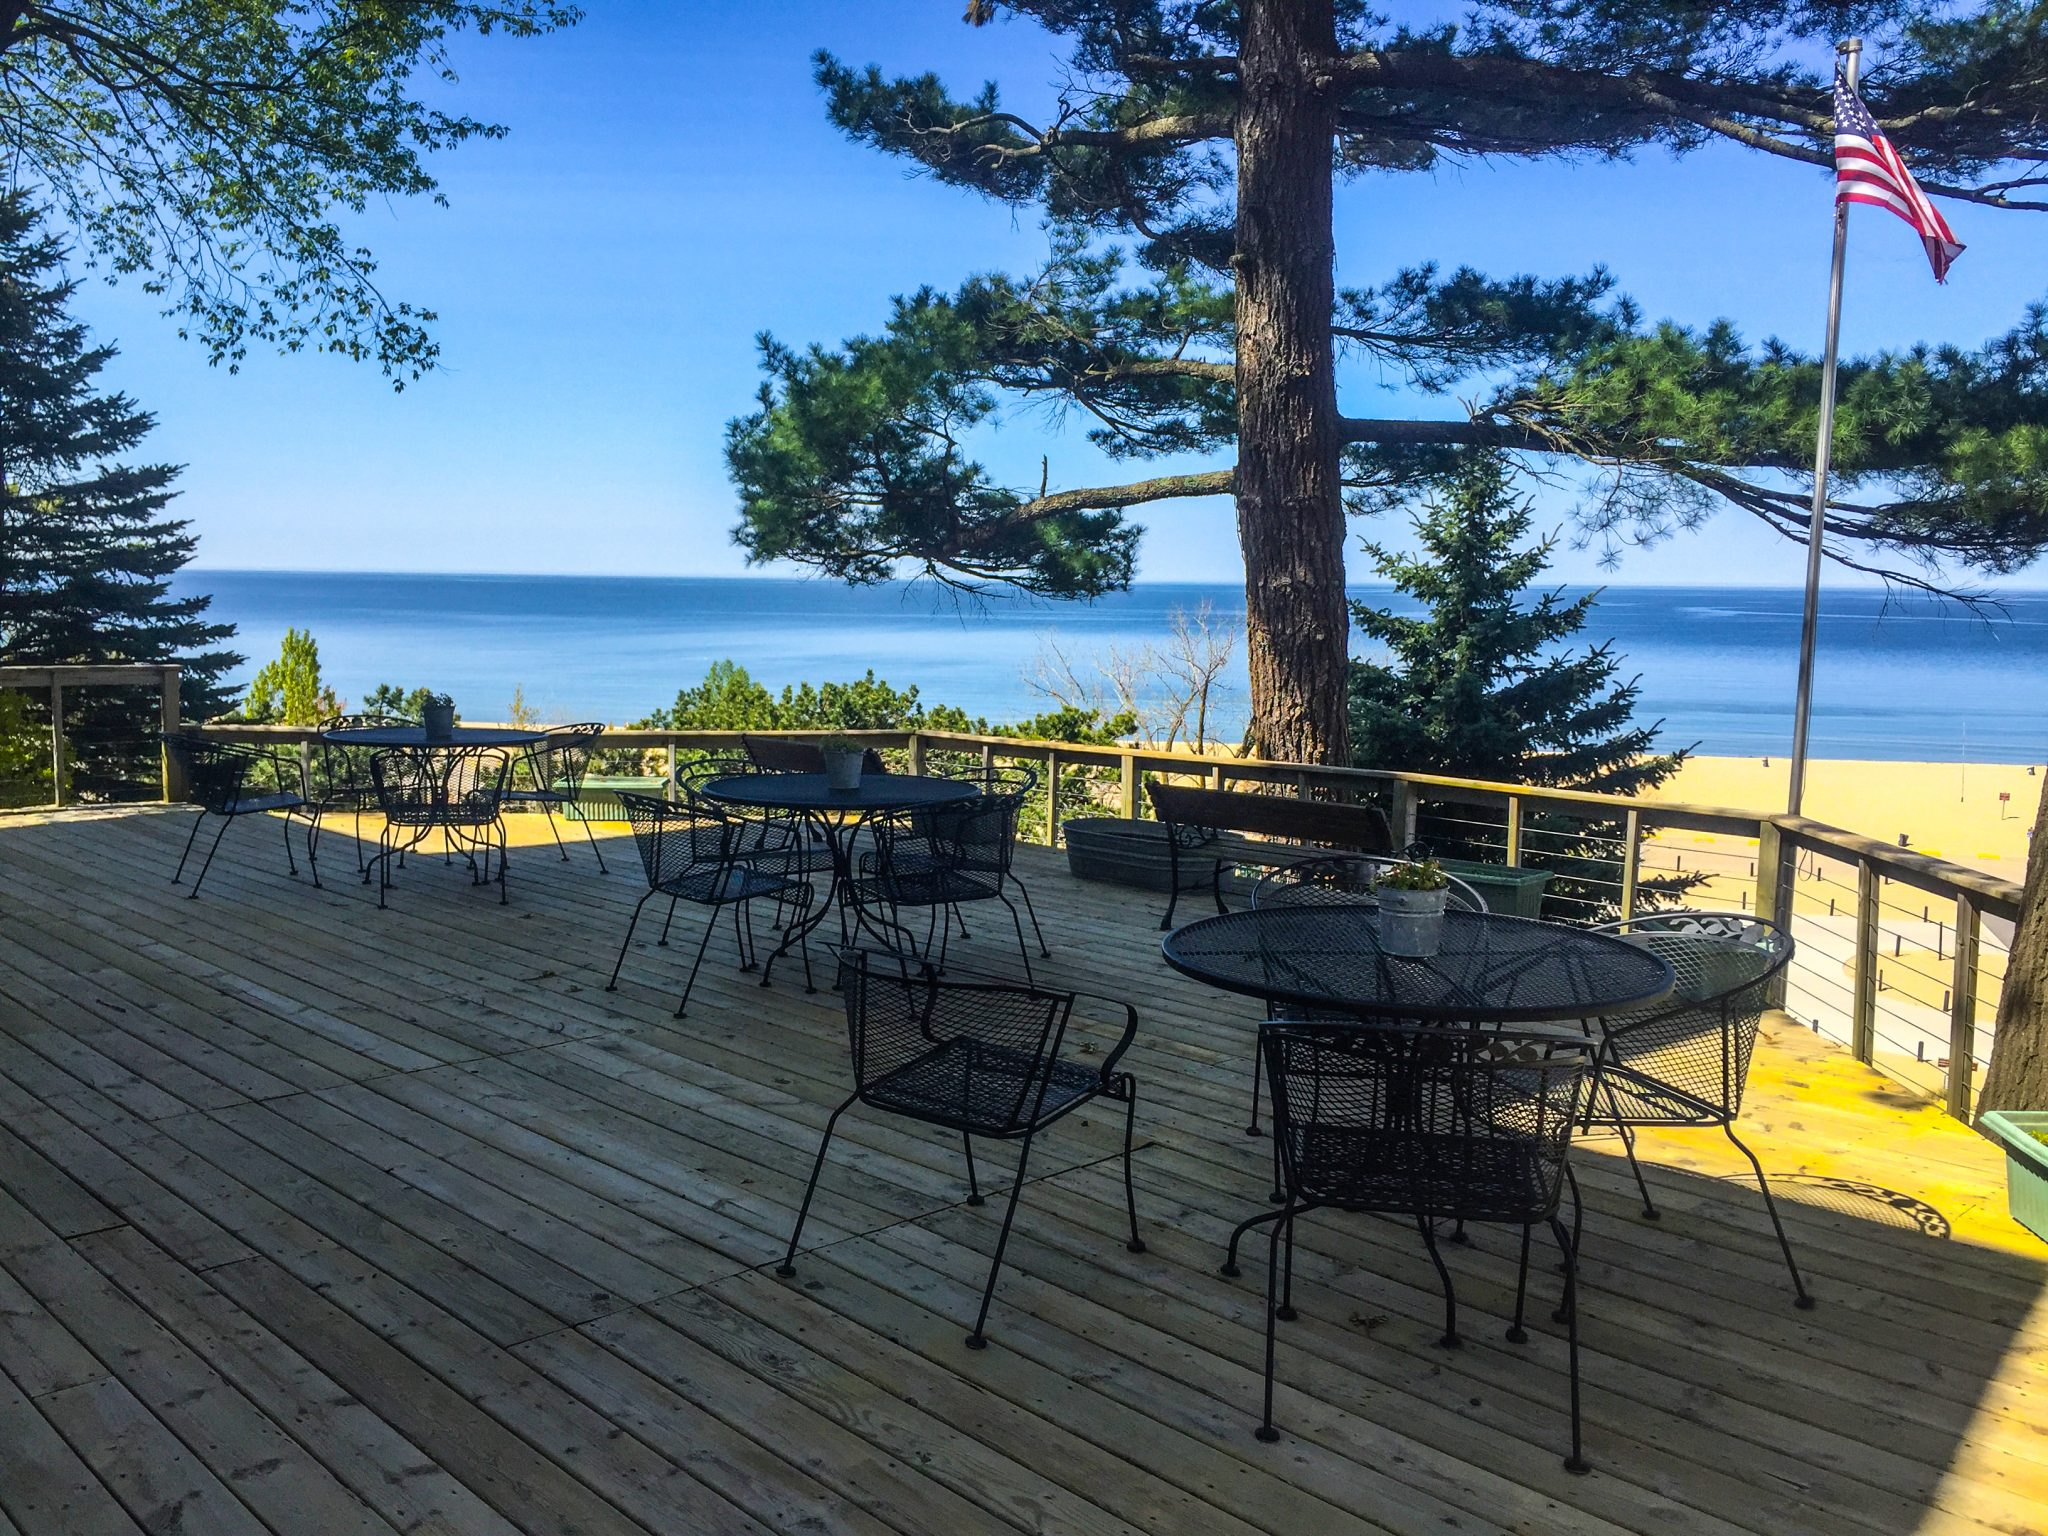 cottage lakeshore rentals michigan haven cottages series grand img inn property tour lodging